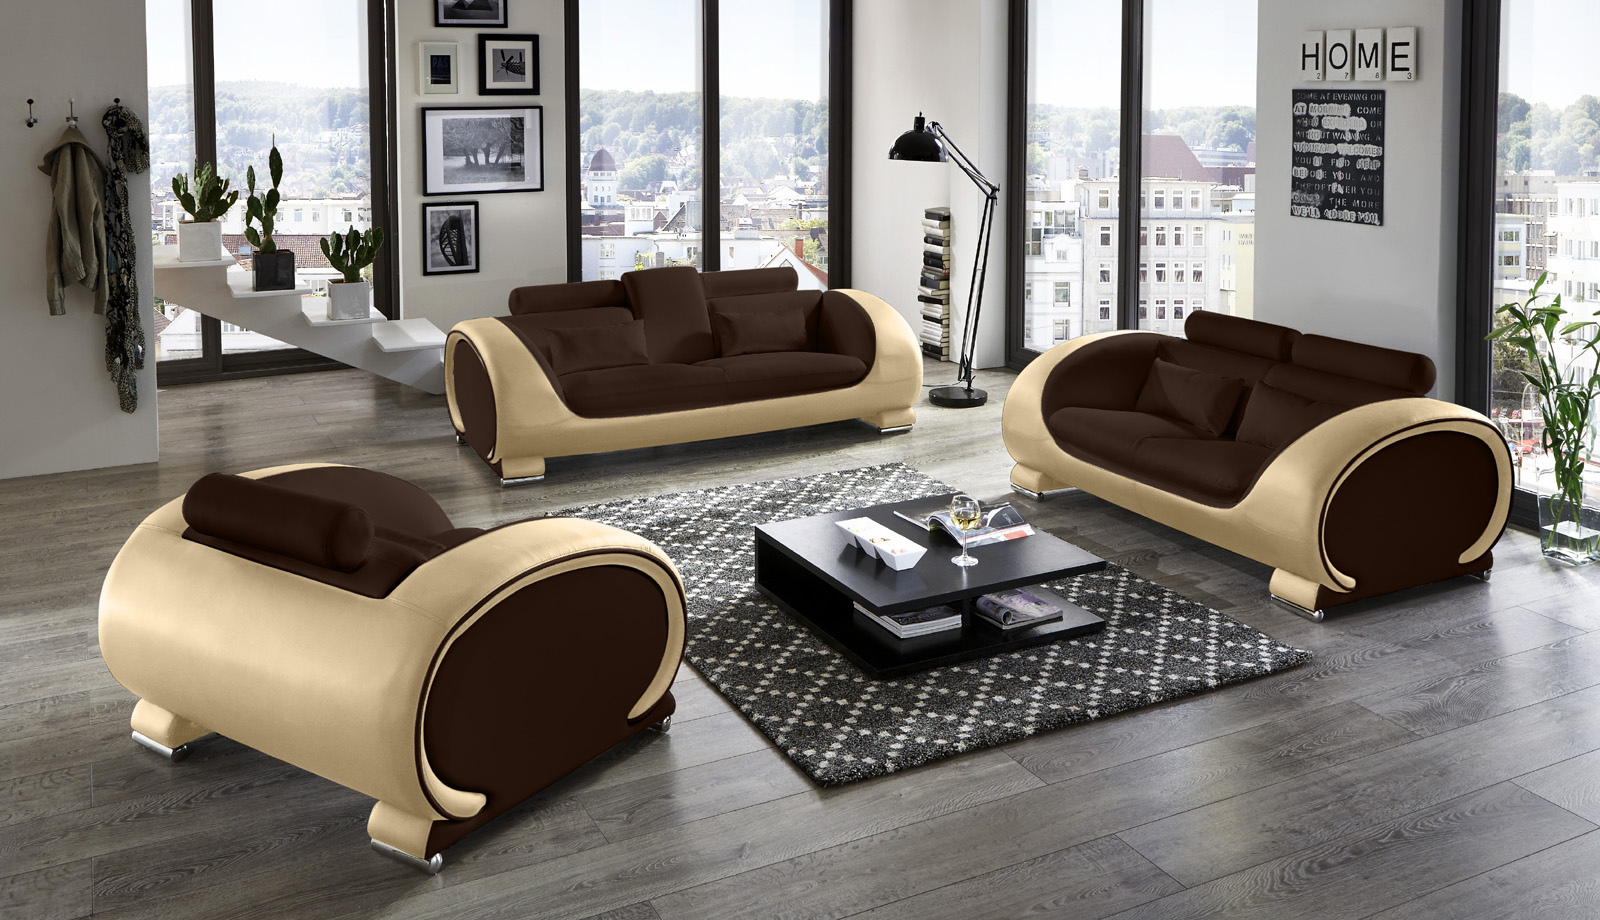 sam sofa garnitur 3tlg in braun creme vigo 3 2 1. Black Bedroom Furniture Sets. Home Design Ideas